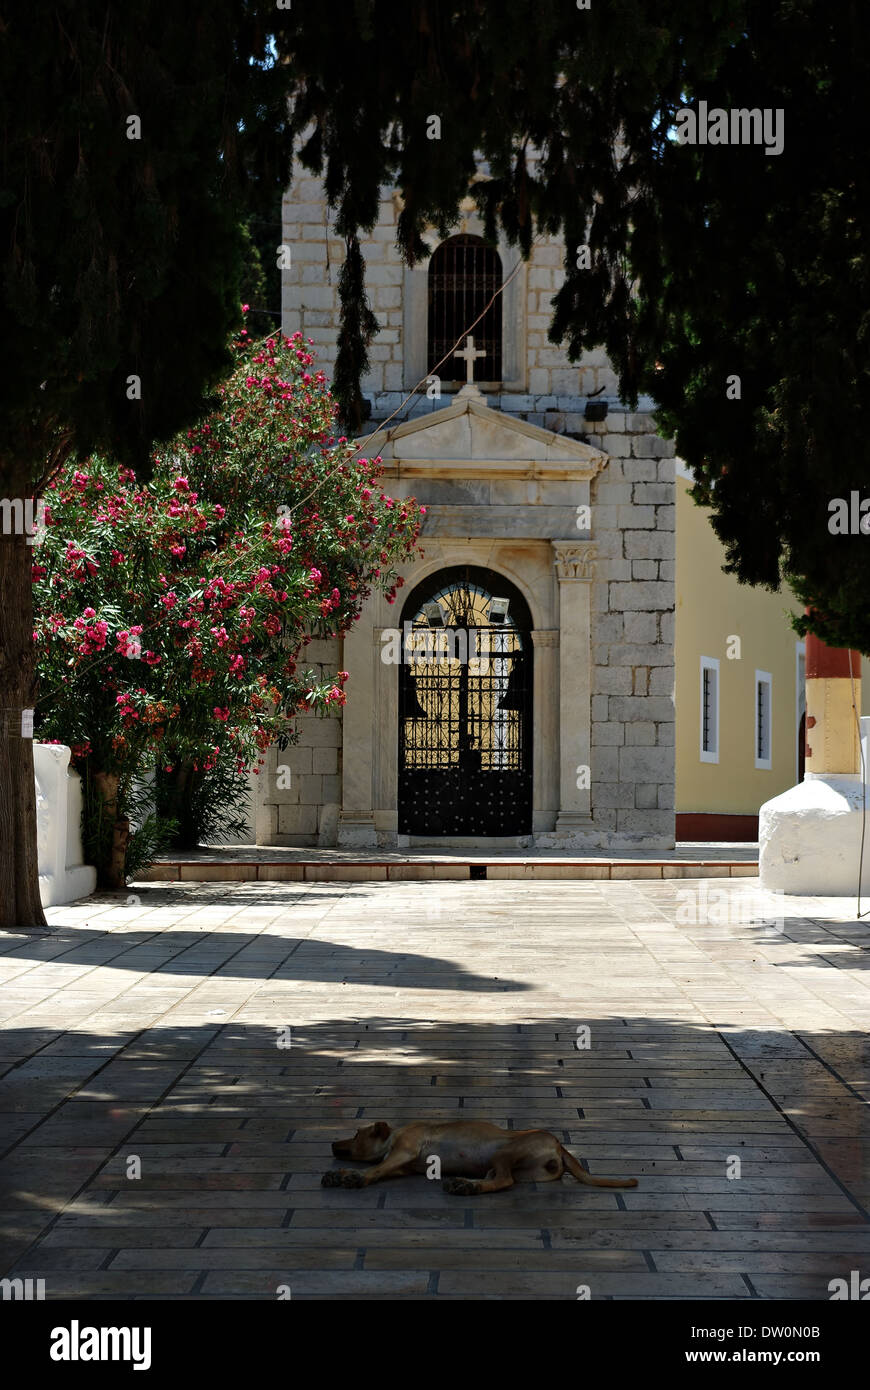 Dog sleeping in tree shadow on stone pavement in front of churche entrance. - Stock Image